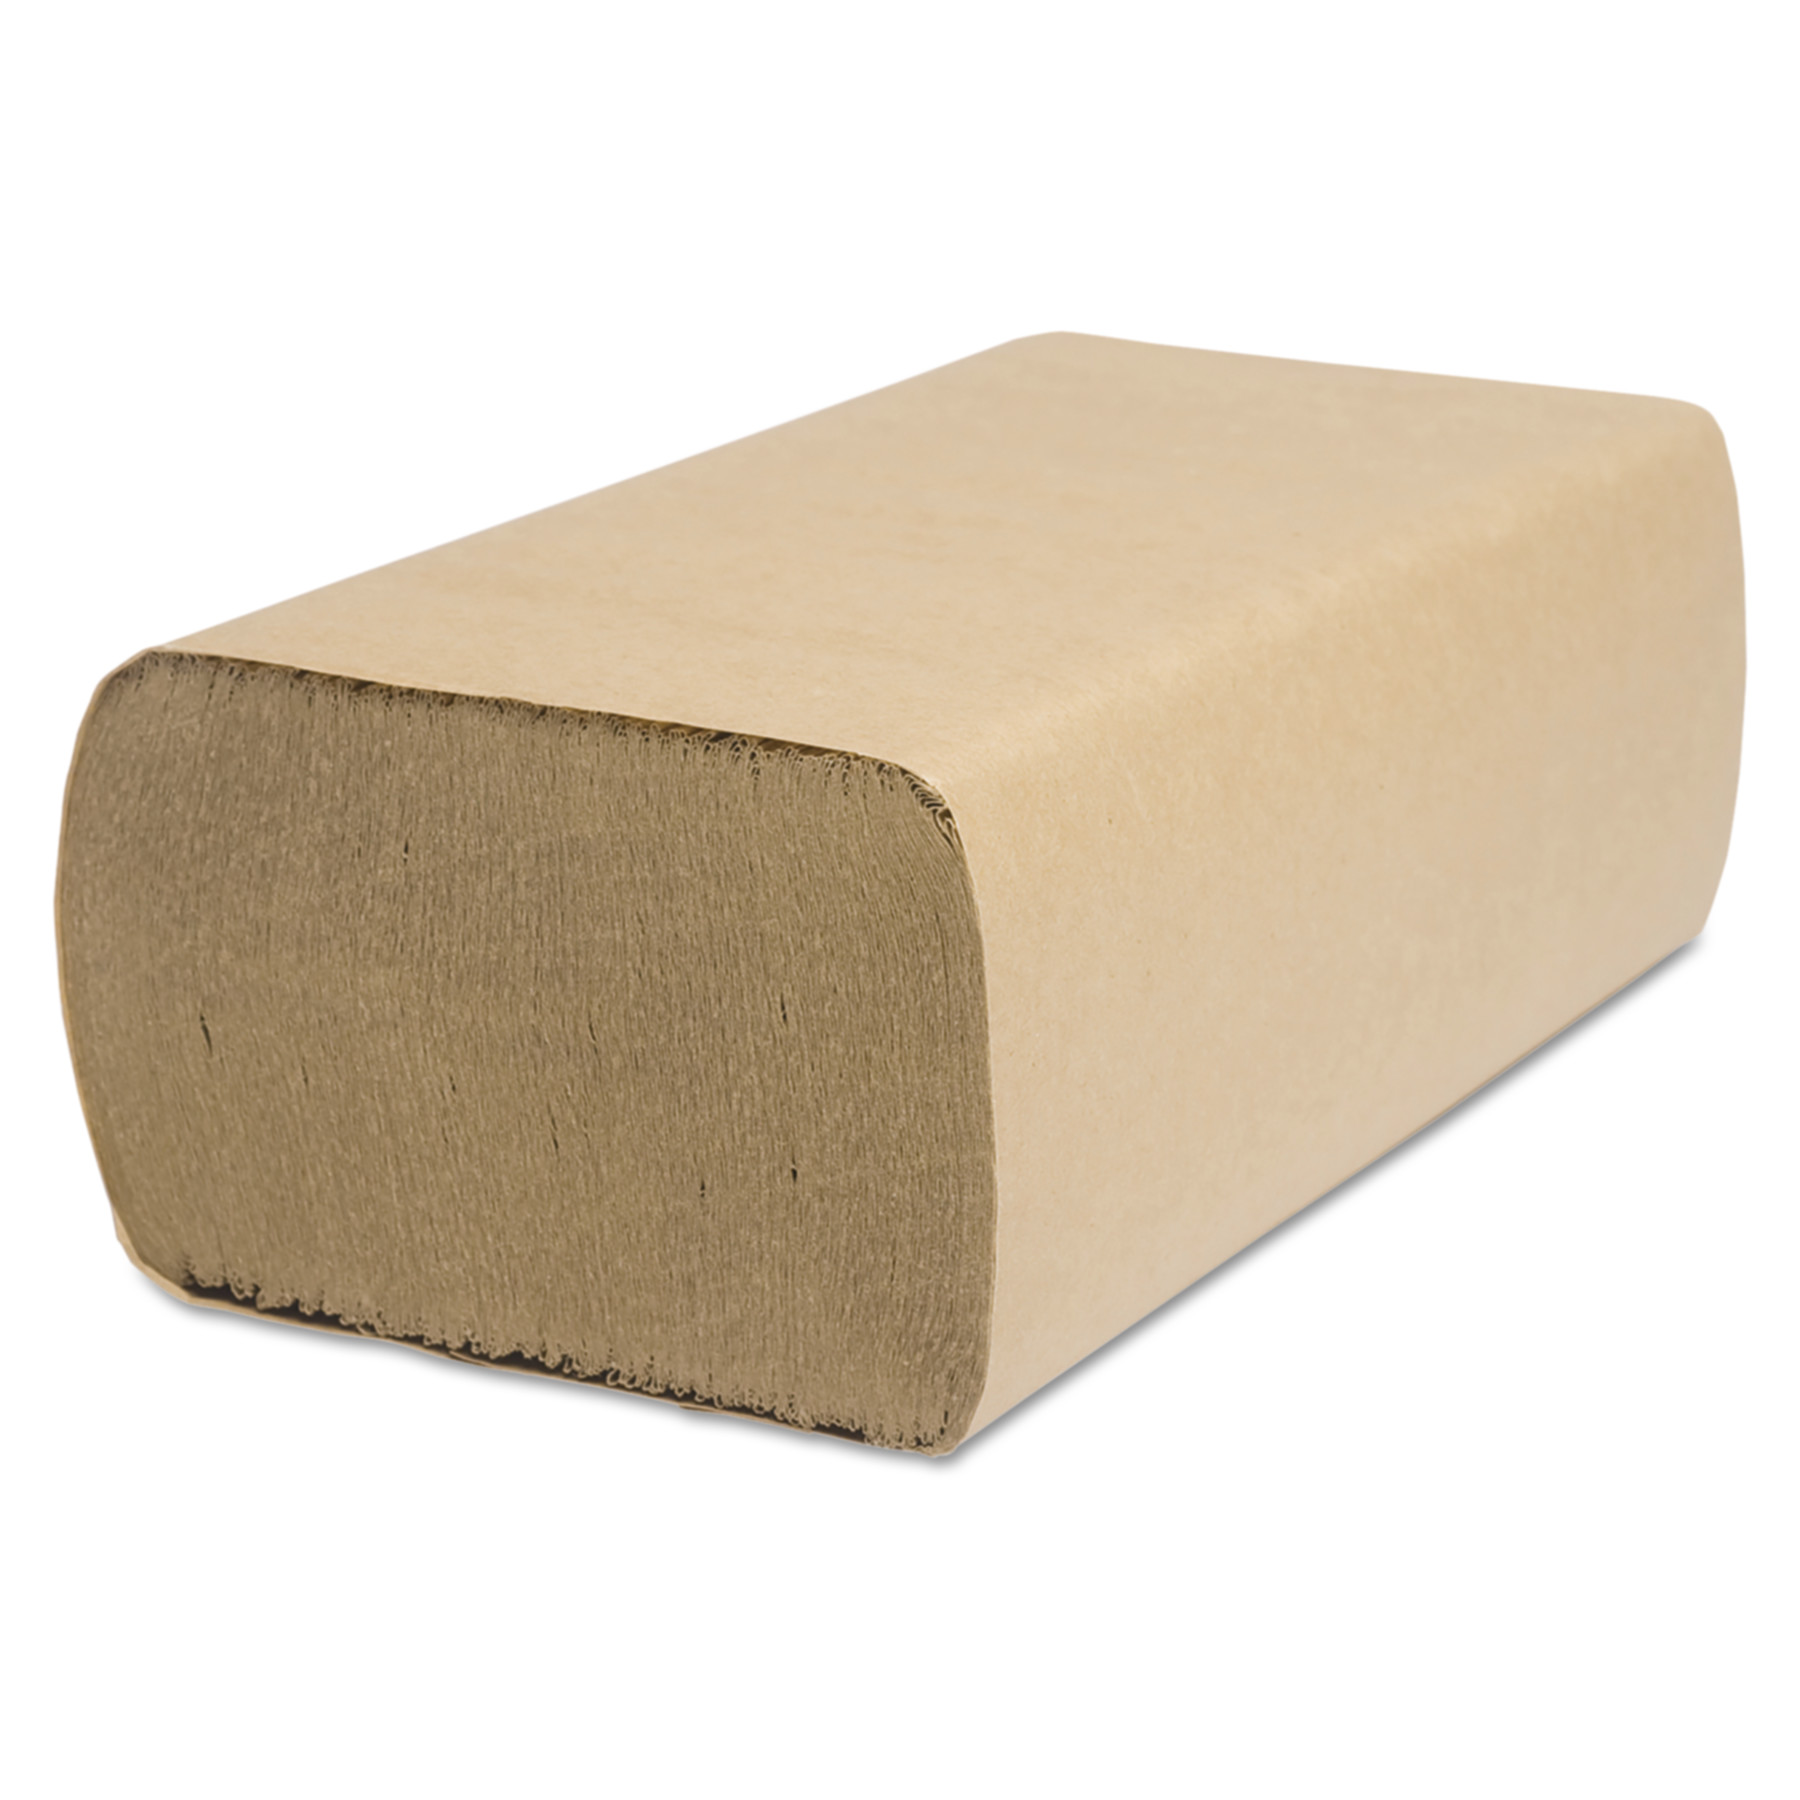 Cascades Decor Multifold Paper Towels, Natural, 250 count, (Pack of 16)